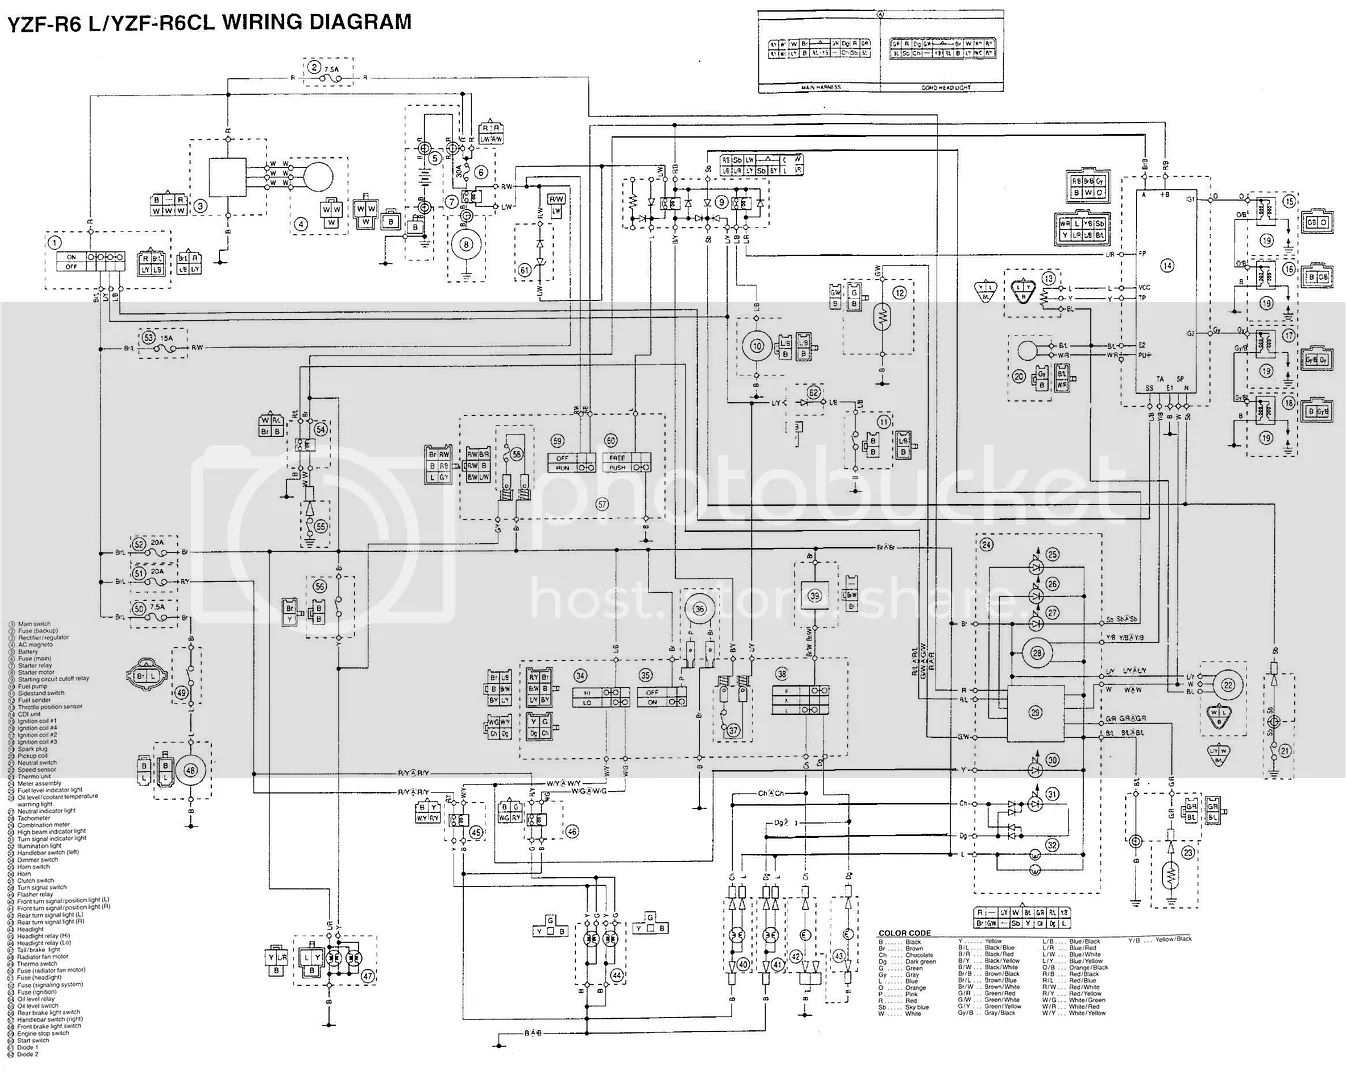 1999 yamaha r6 wiring harness diagram